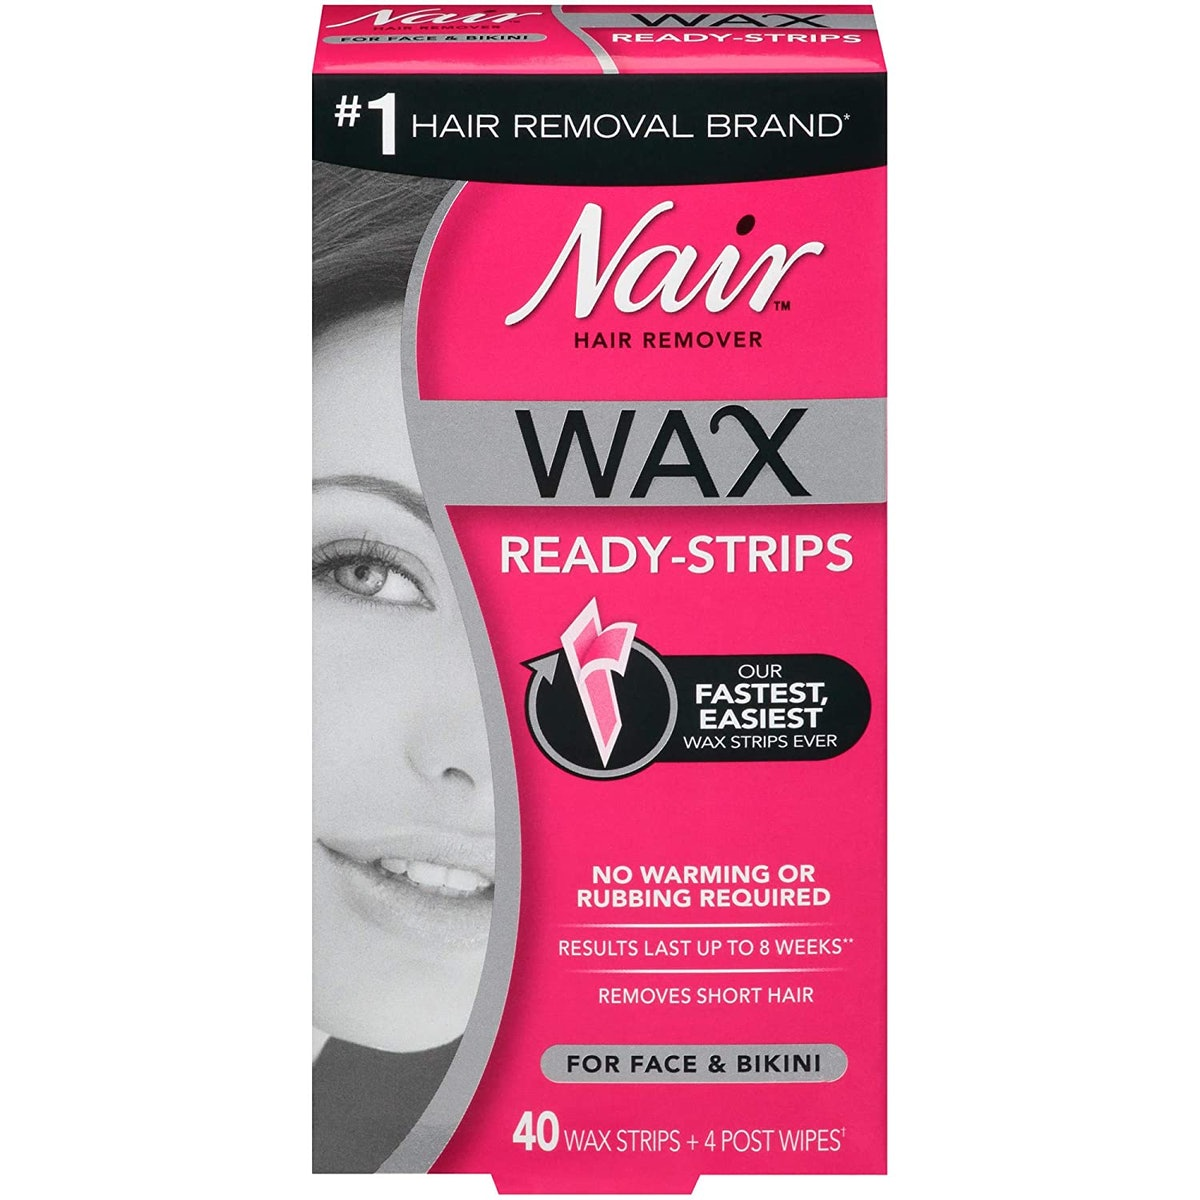 Nair Hair Remover Wax Ready-Strips (40-Count)